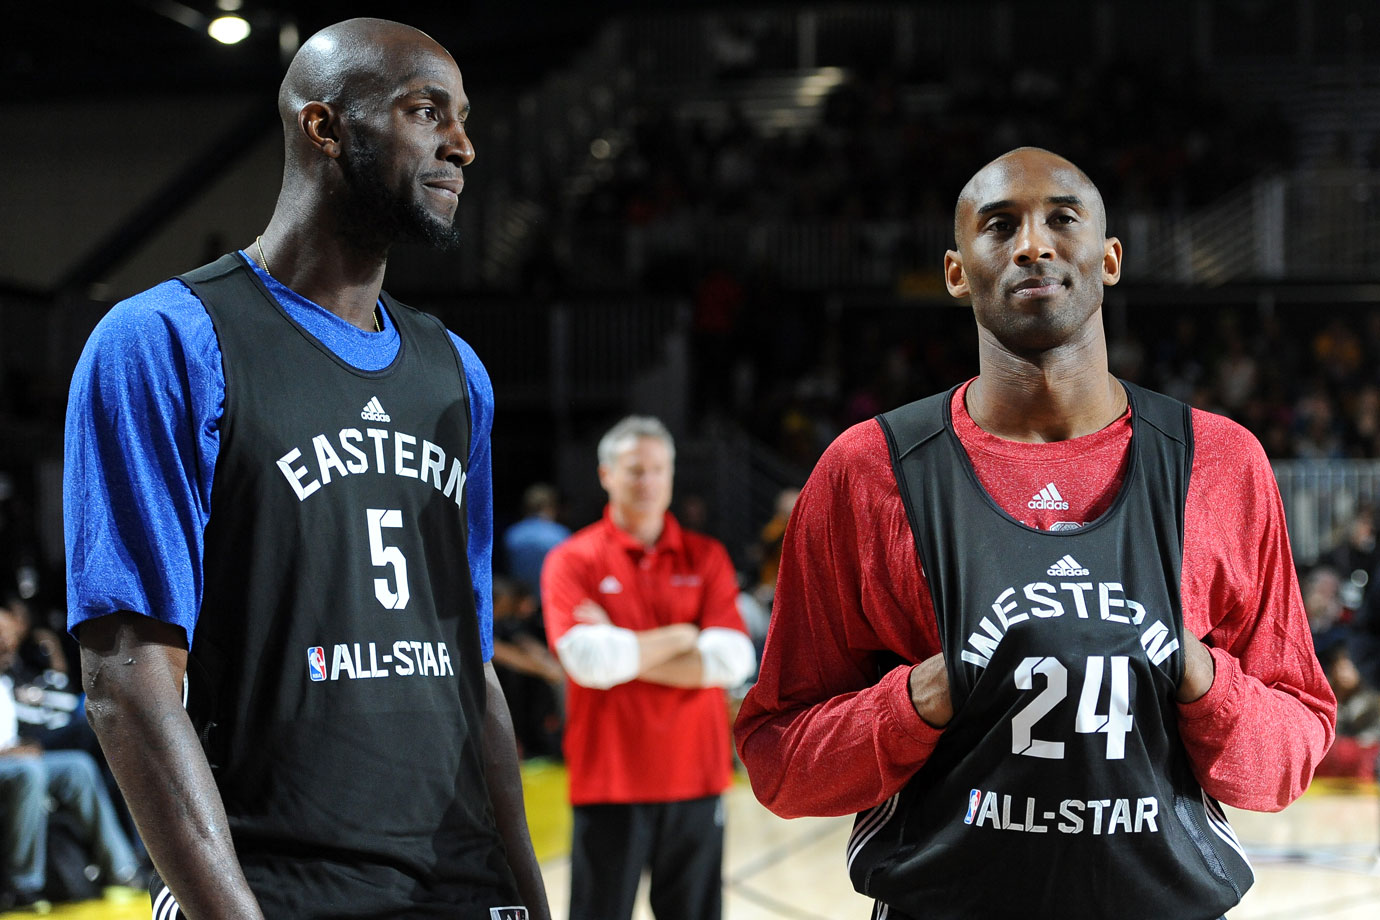 Kevin Garnett and Kobe Bryant talk during the NBA All-Star practice in Houston. Garnett made 12 consecutive All-Star appearances from 2000 to 2011.